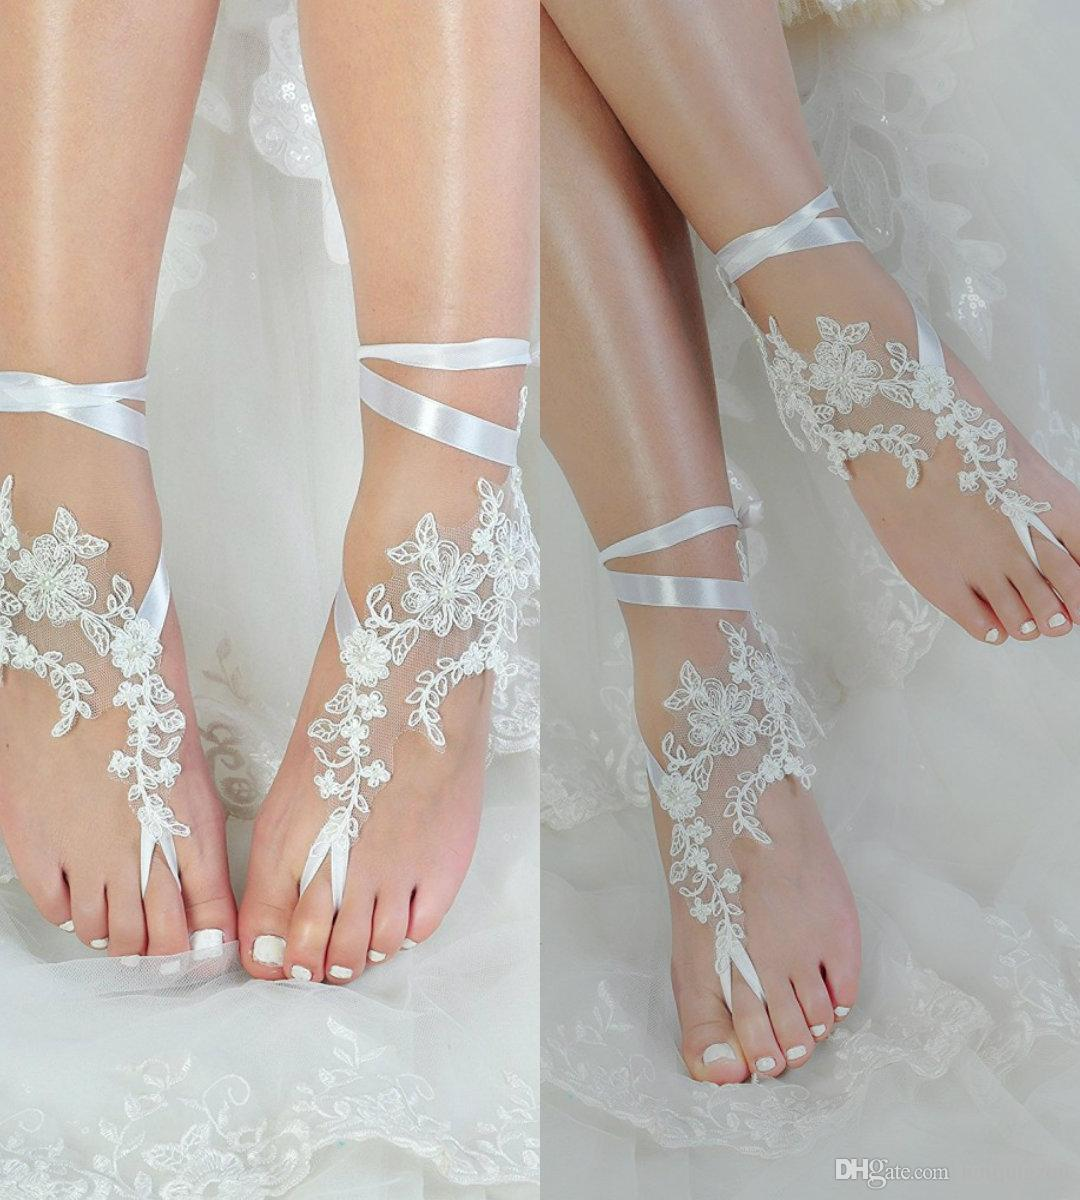 c43ffcf4a7c12 Gorgeous Ribbon Beach Wedding Shoes Delicate Beads Open Toe Ankle Strap  Flat Bridal Shoe For Summer Wedge Shoe White Bridal Shoes From Huifangzou